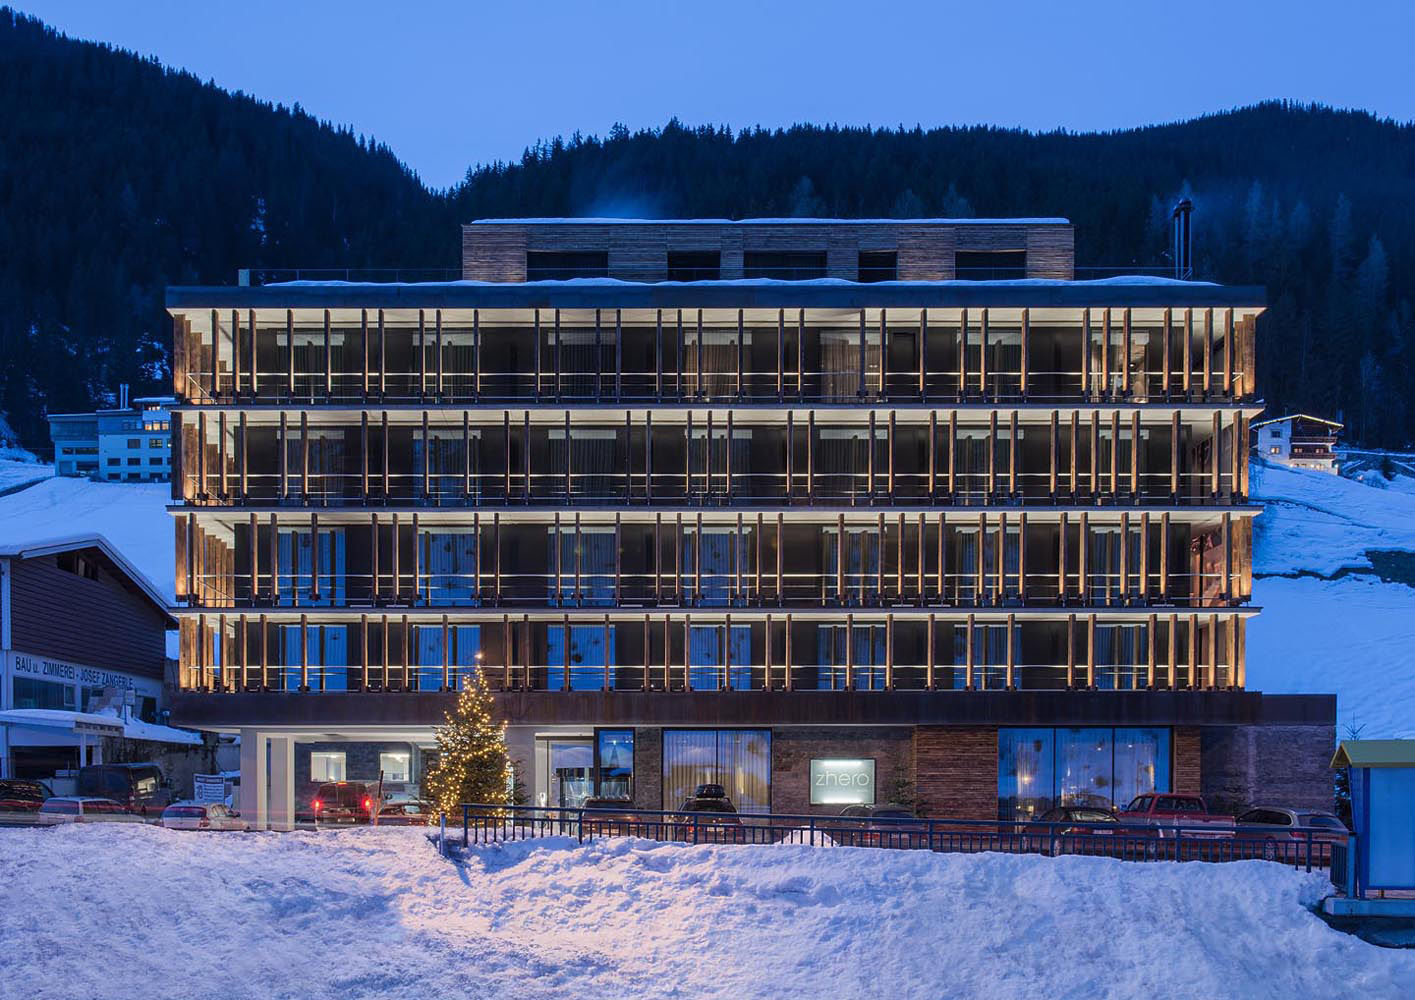 Zhero Hotel Kappl Tyrol Zhero Hotel Kappl Interiors And Contract En